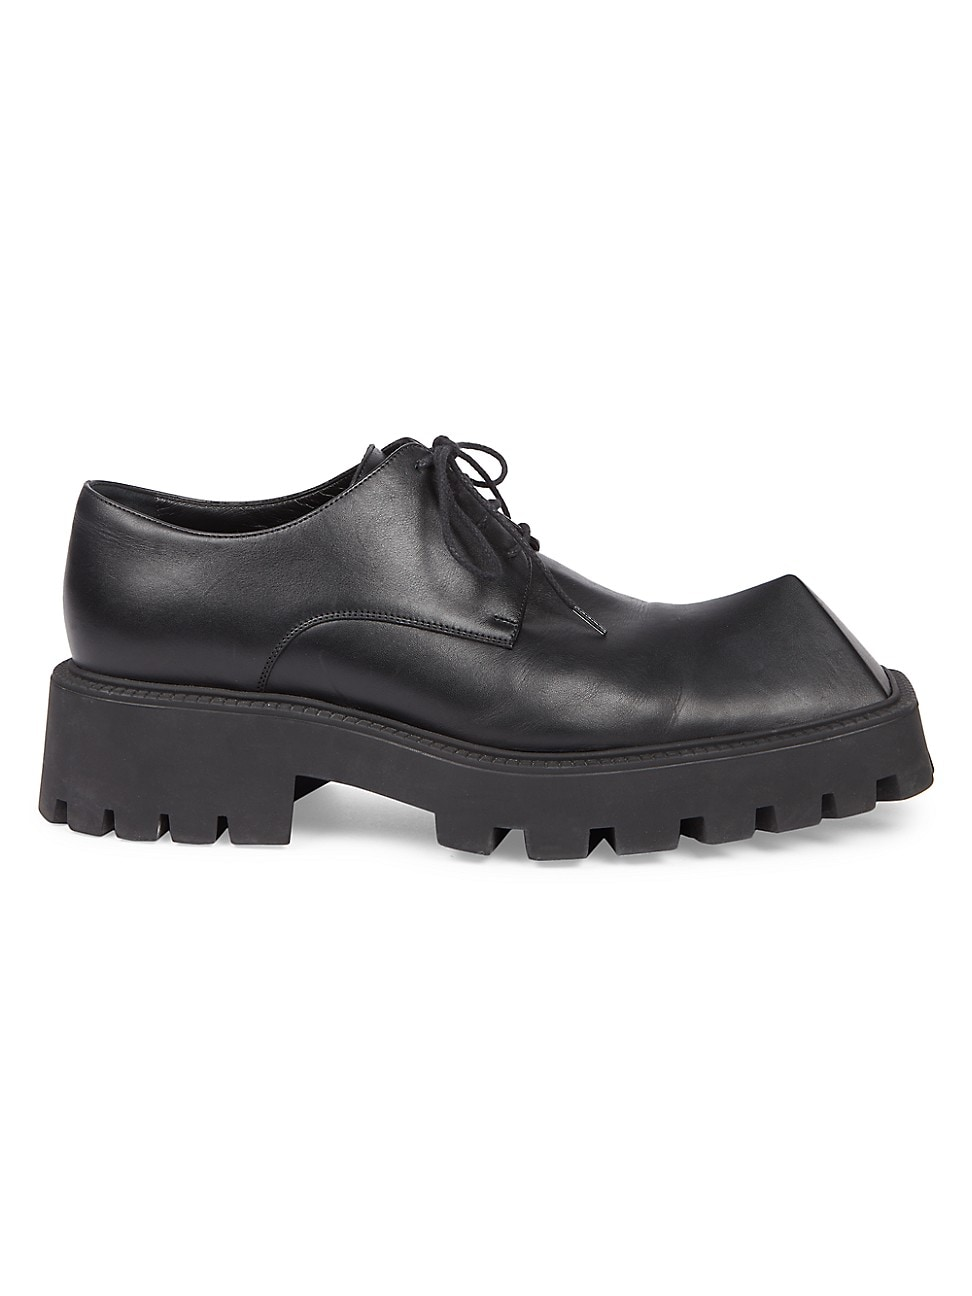 Balenciaga Leathers MEN'S RHINO LEATHER PLATFORM DERBY SHOES